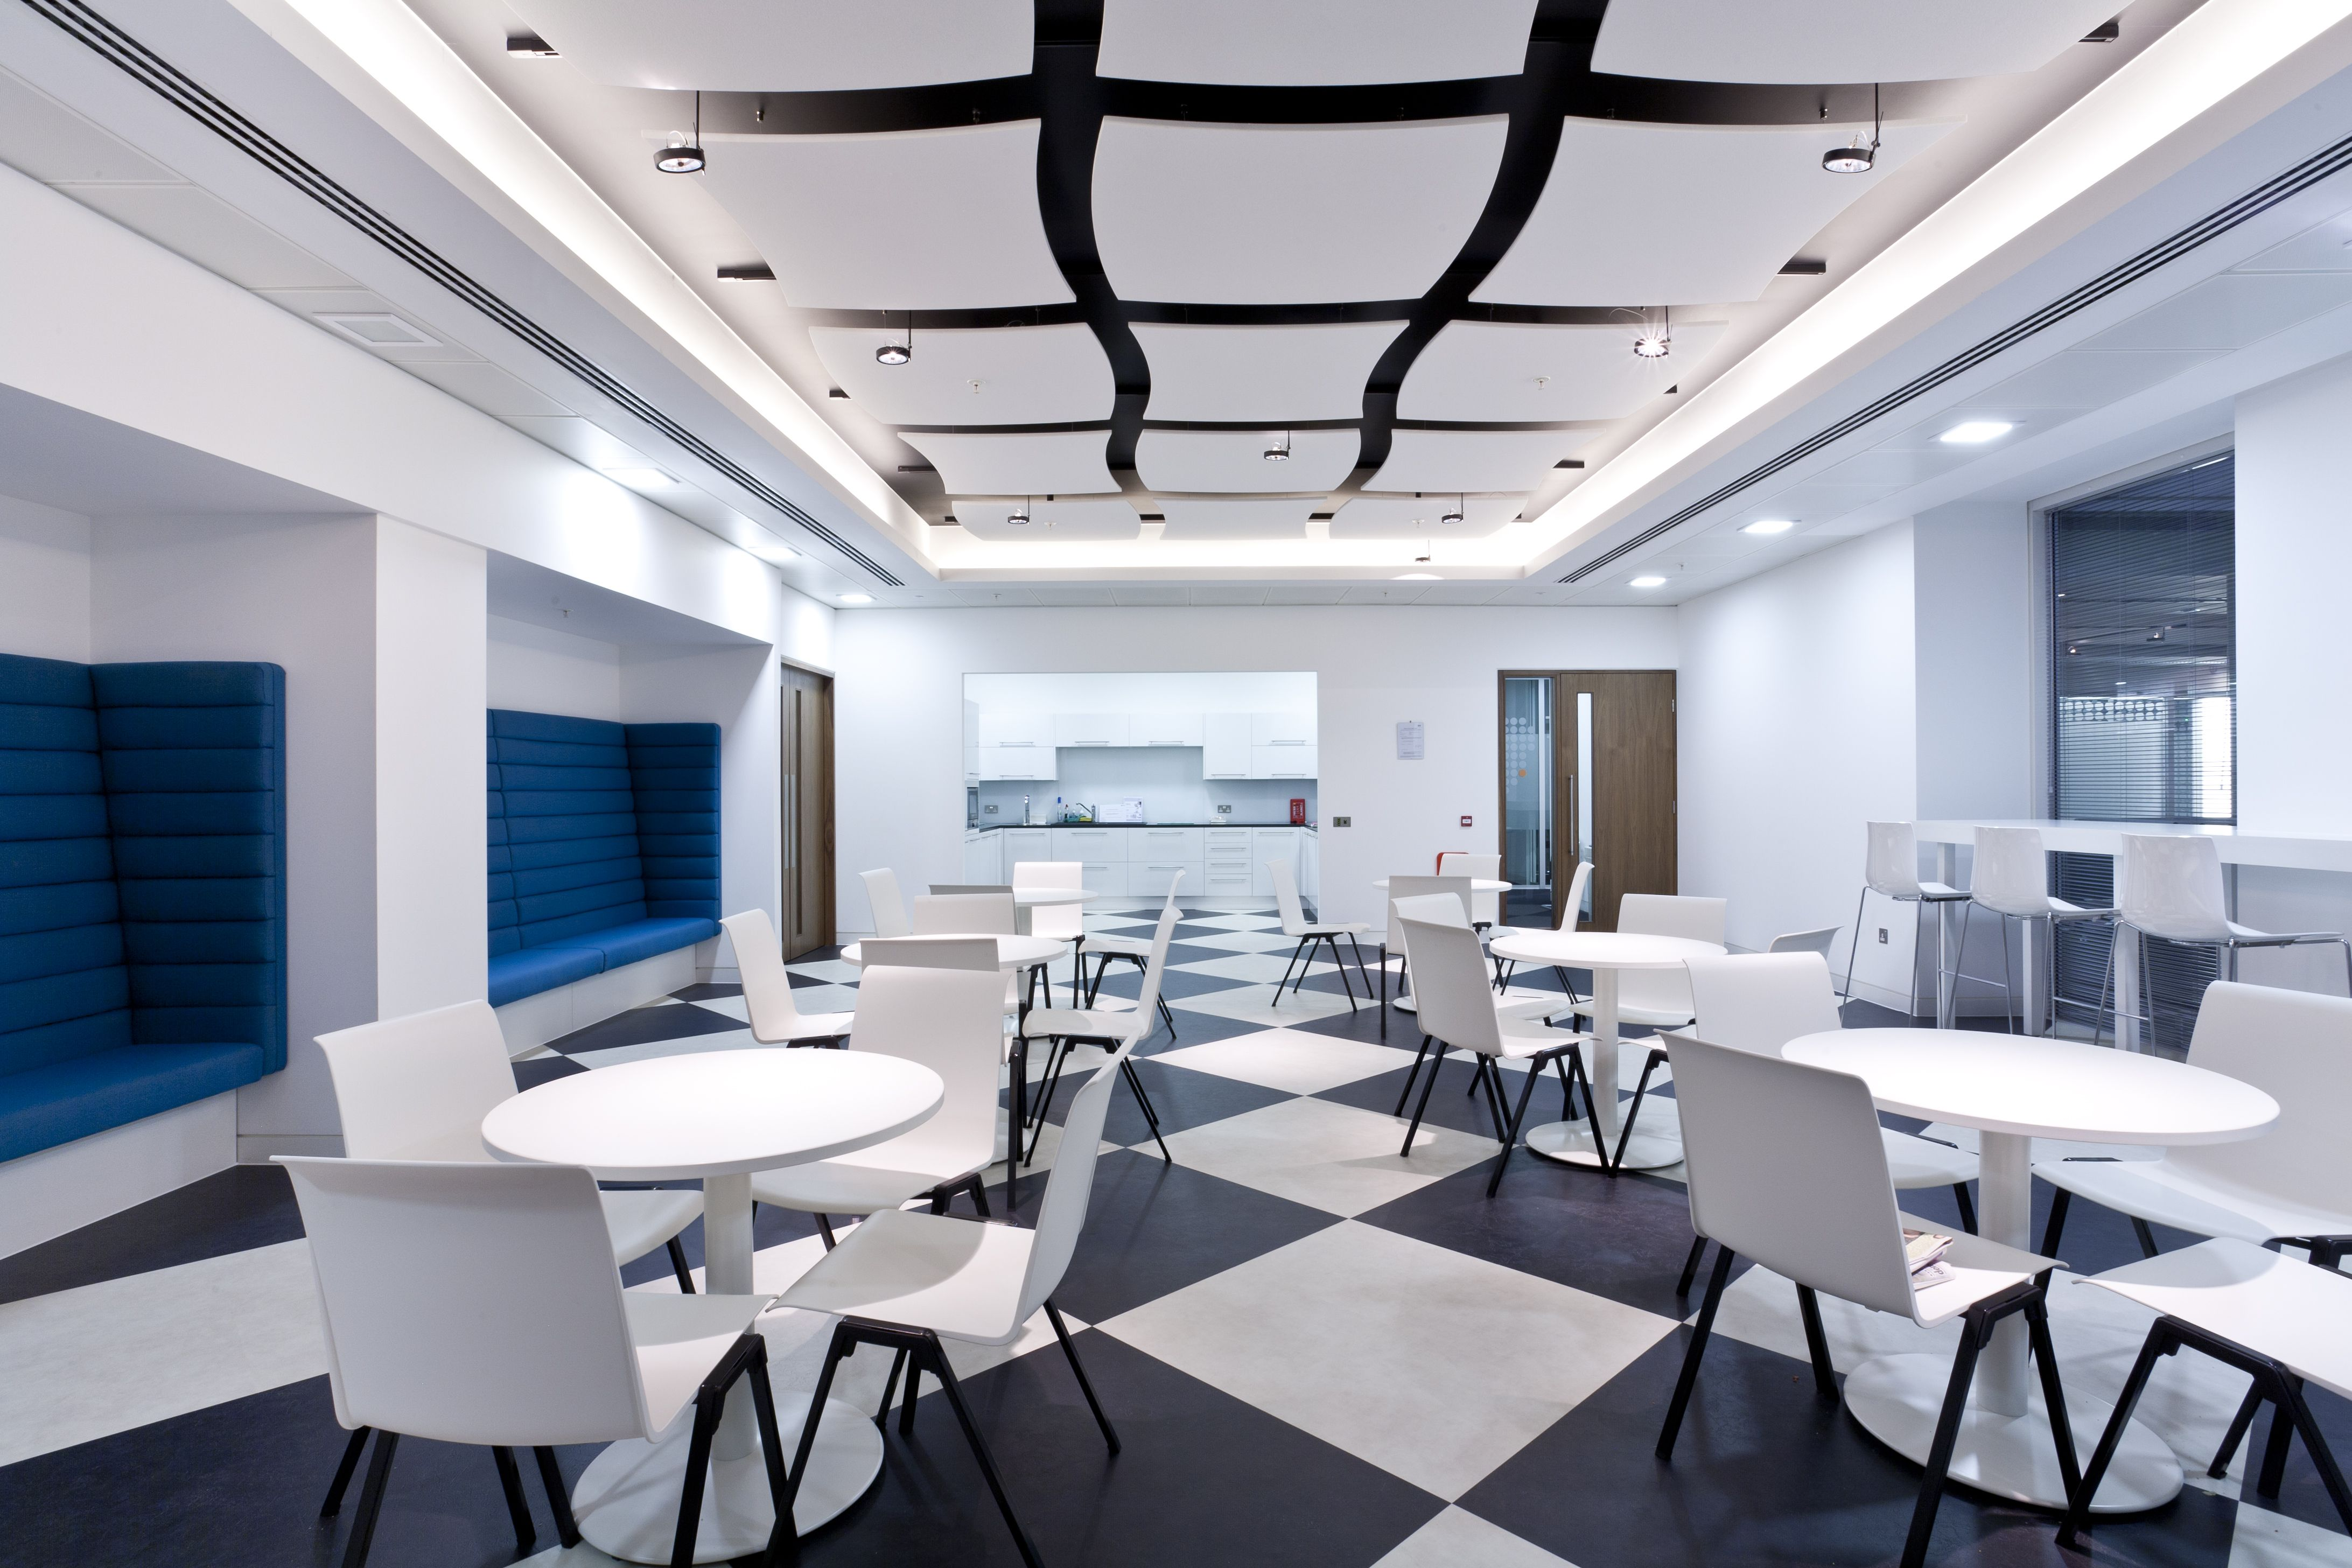 Optima canopy by armstrong iida oregon iidaor ceilings for Office ceiling design